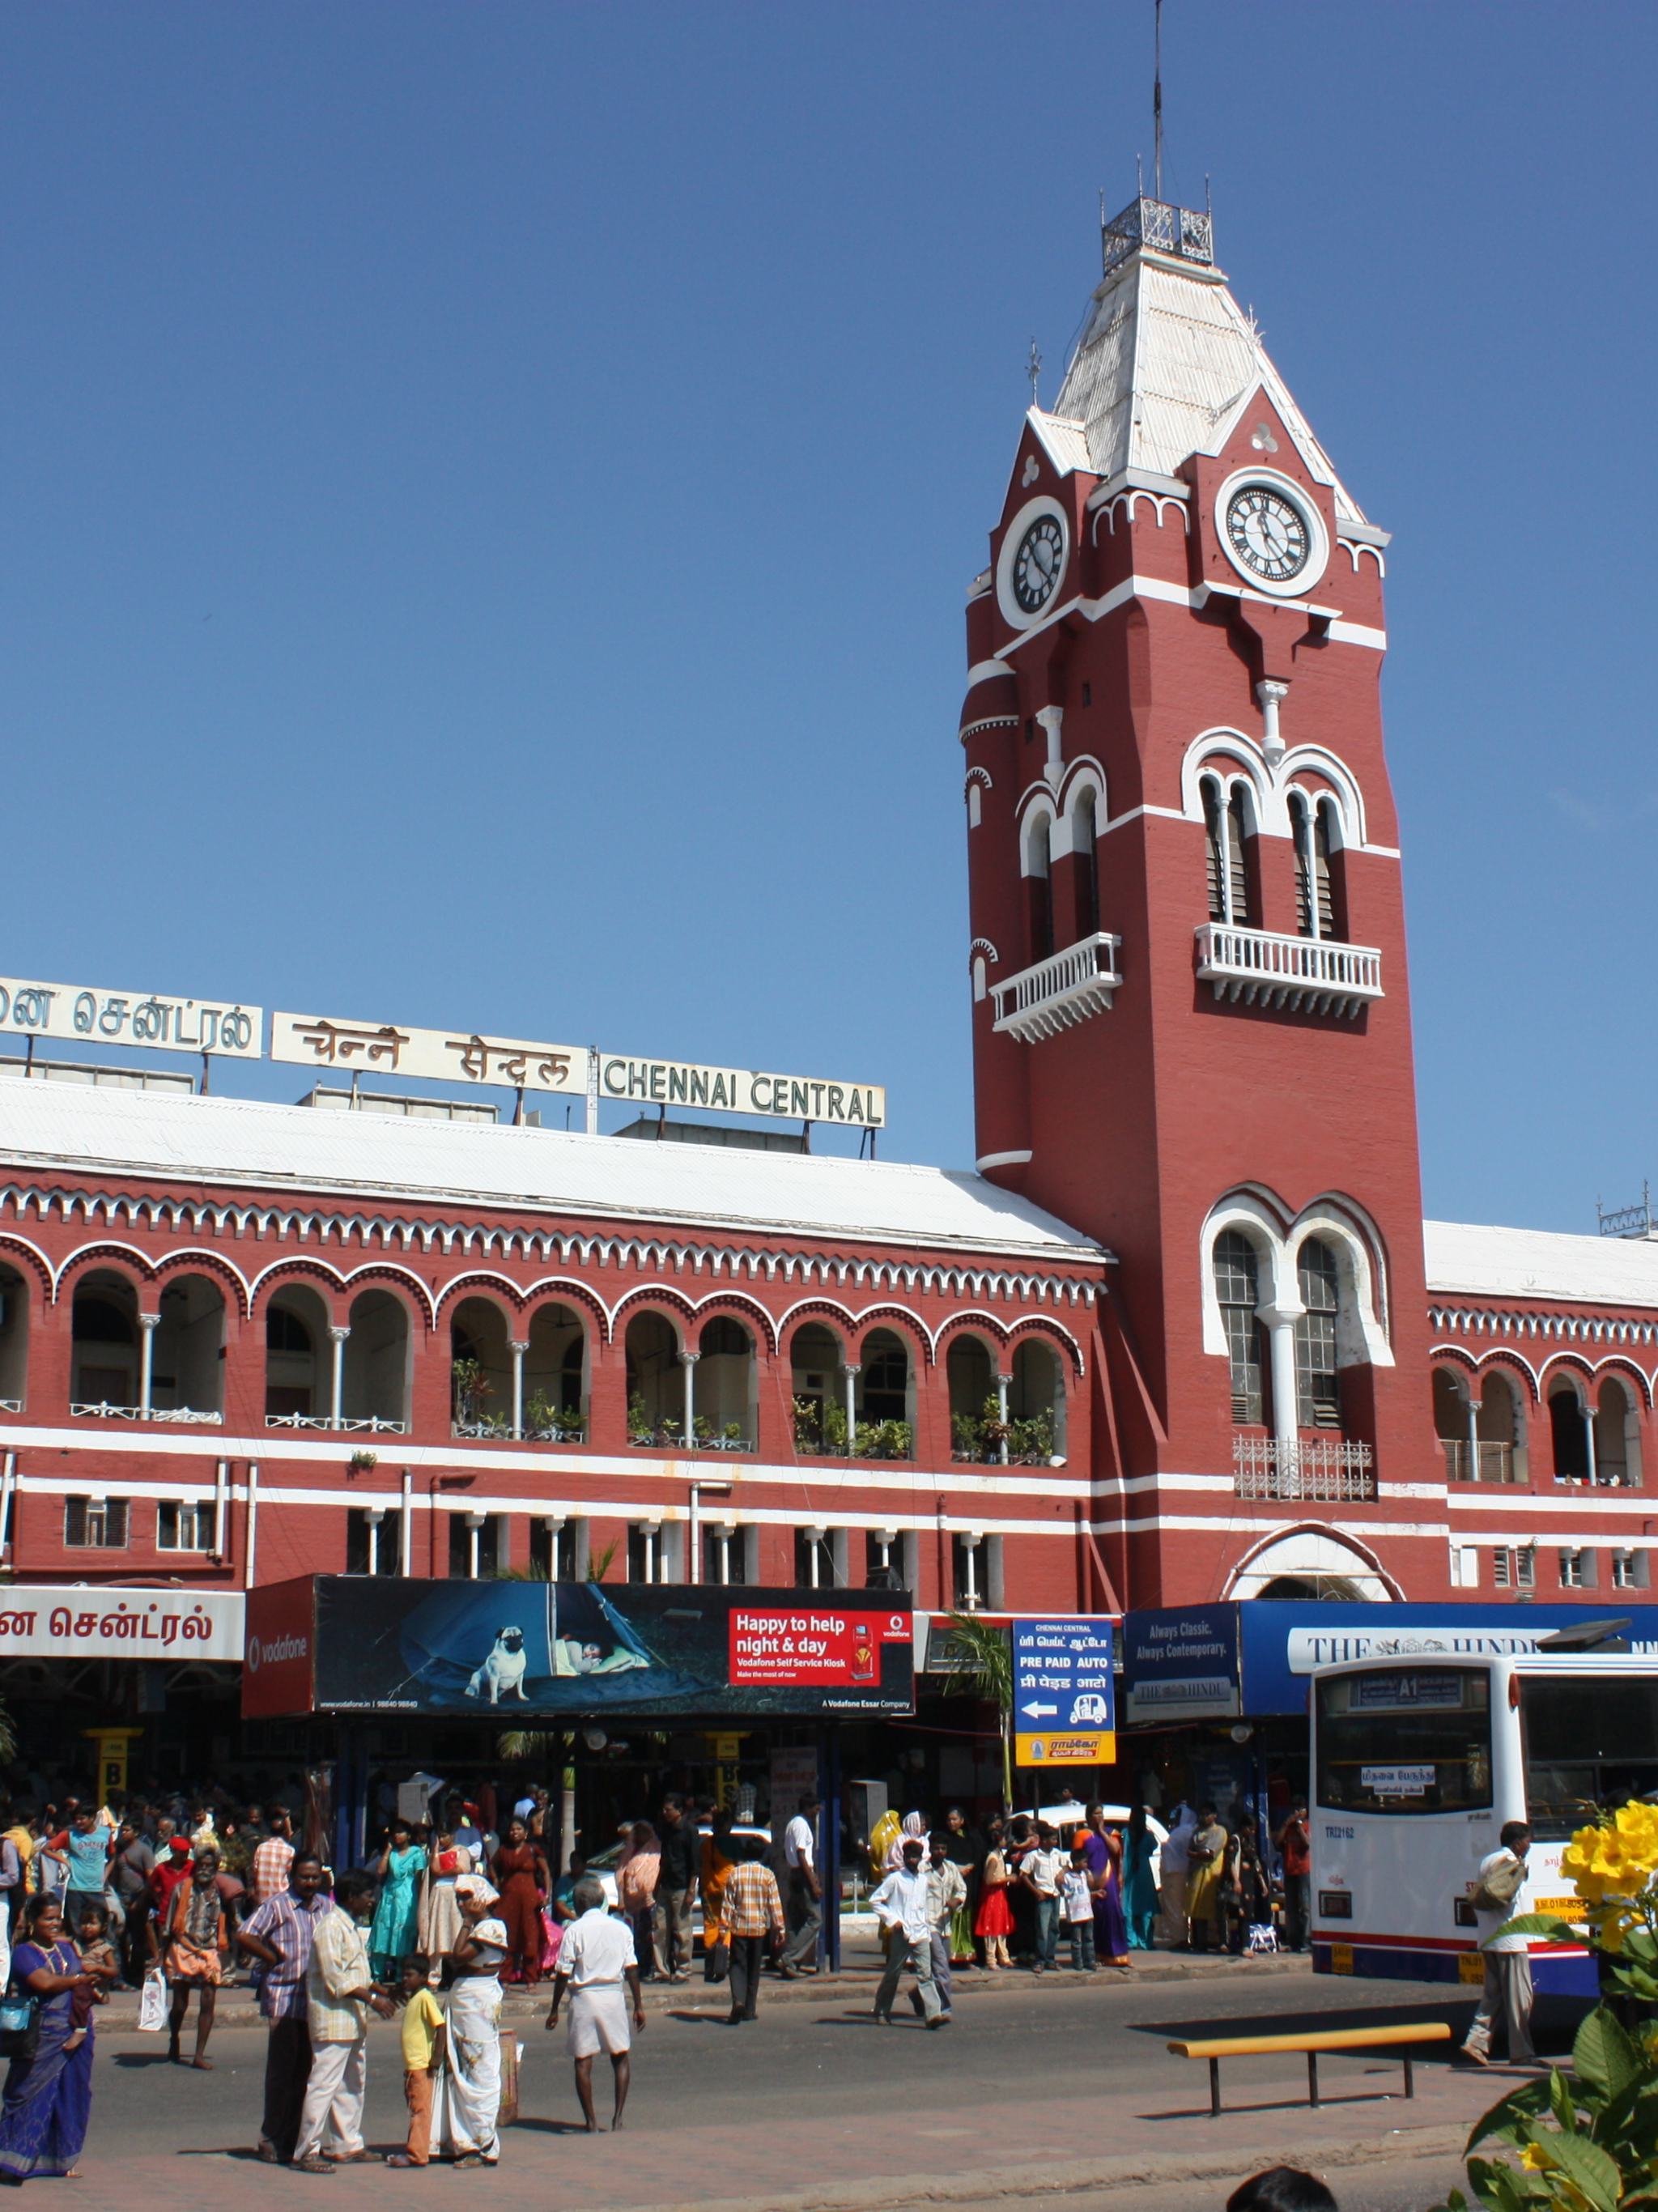 Free download CHENNAI Photos Images and Wallpapers HD ...